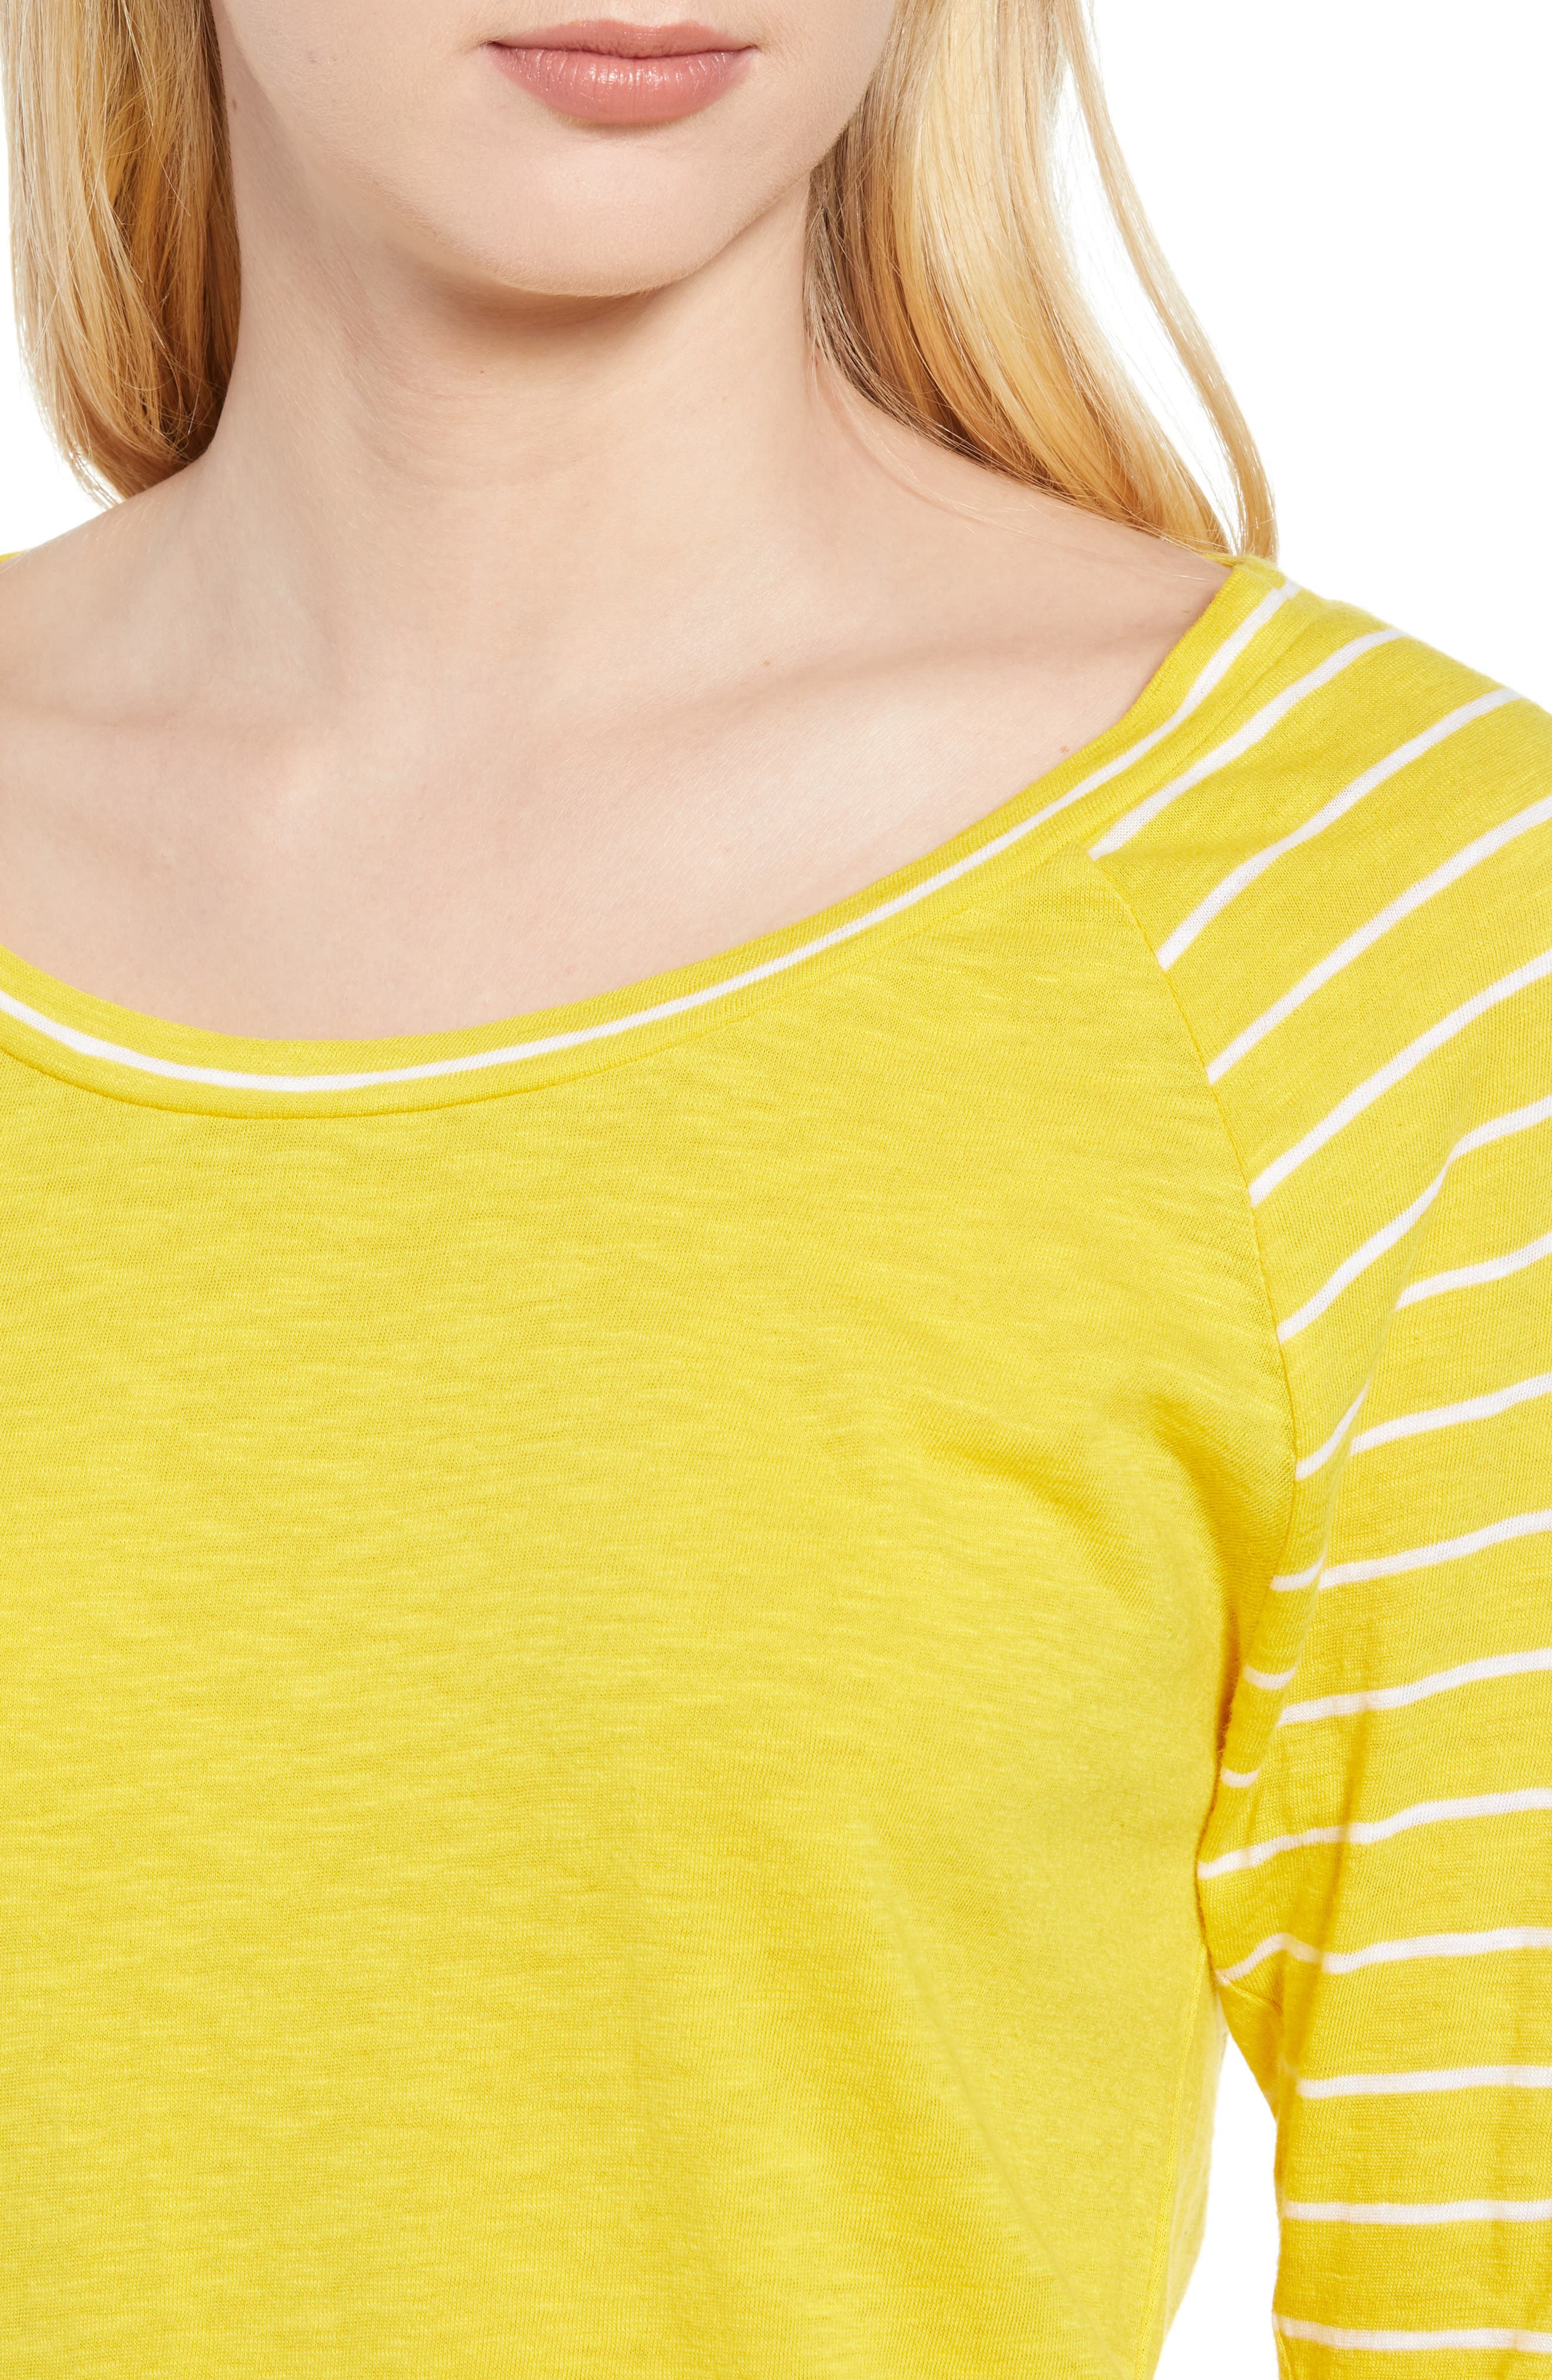 Lightweight Colorblock Cotton Tee,                             Alternate thumbnail 27, color,                             Yellow- White Lukah Combo